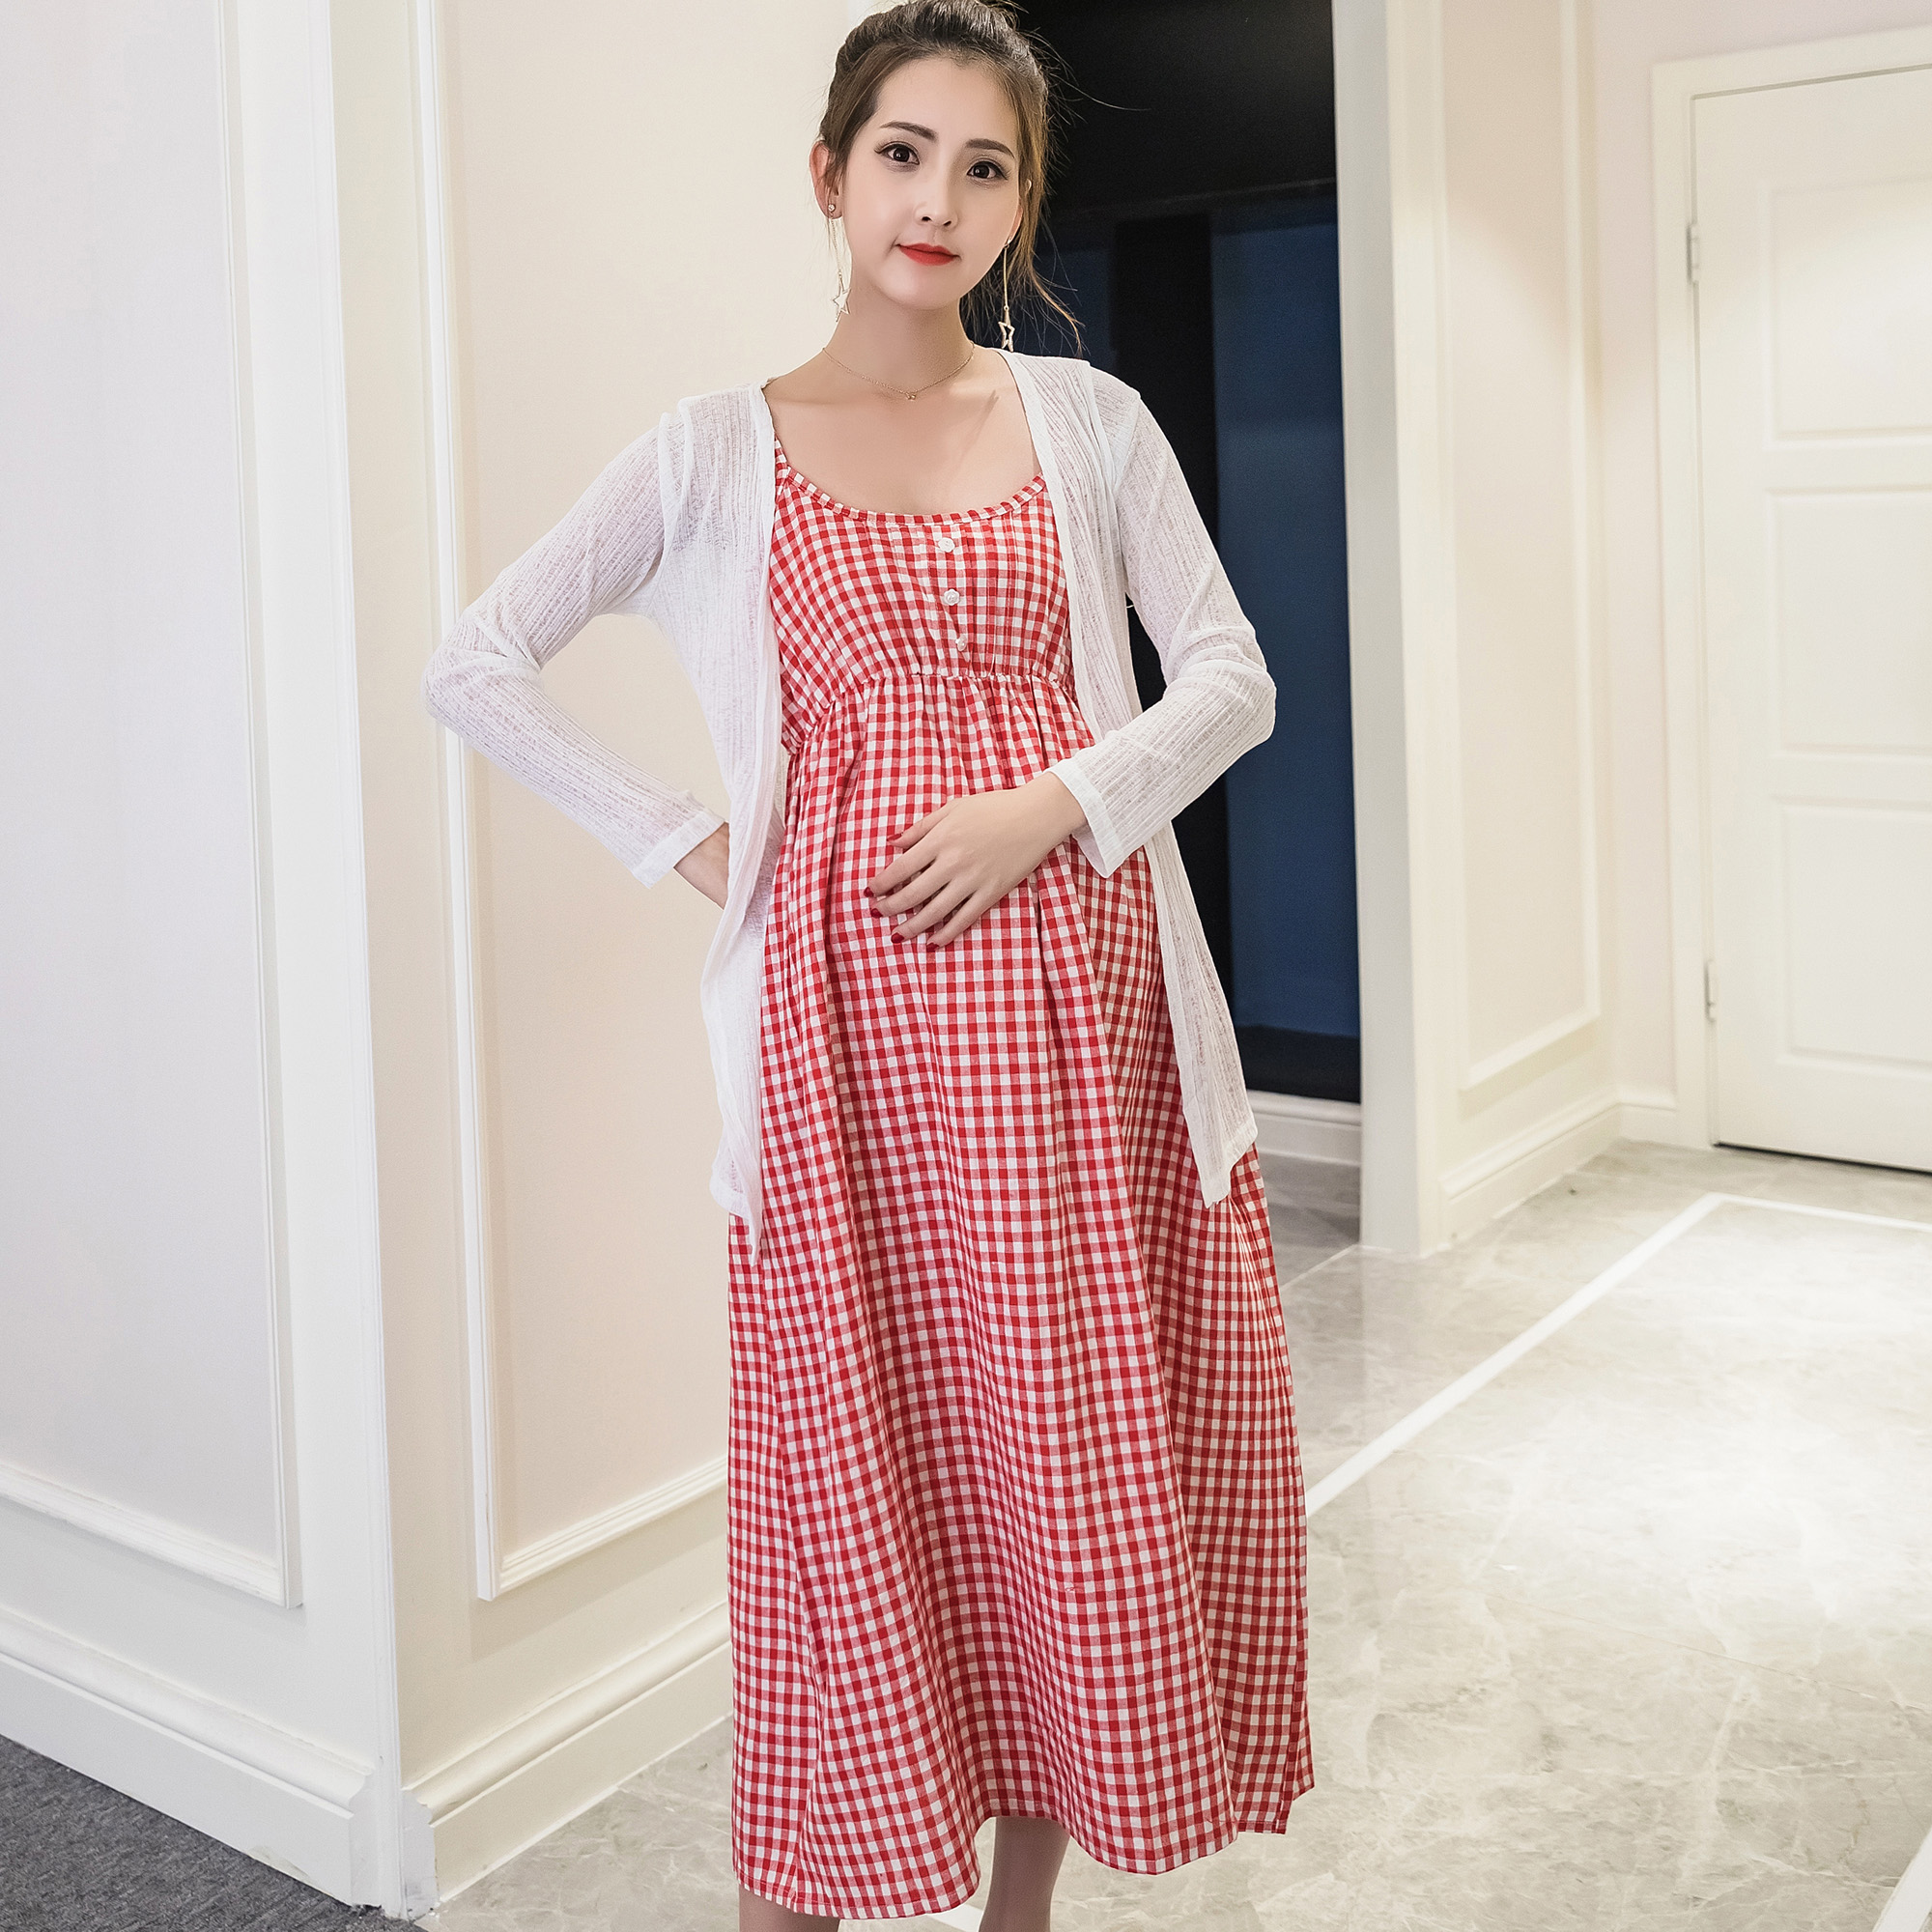 Pink long maternity dress image collections braidsmaid dress long pink maternity dress gallery braidsmaid dress cocktail pink long maternity dress gallery braidsmaid dress cocktail ombrellifo Image collections